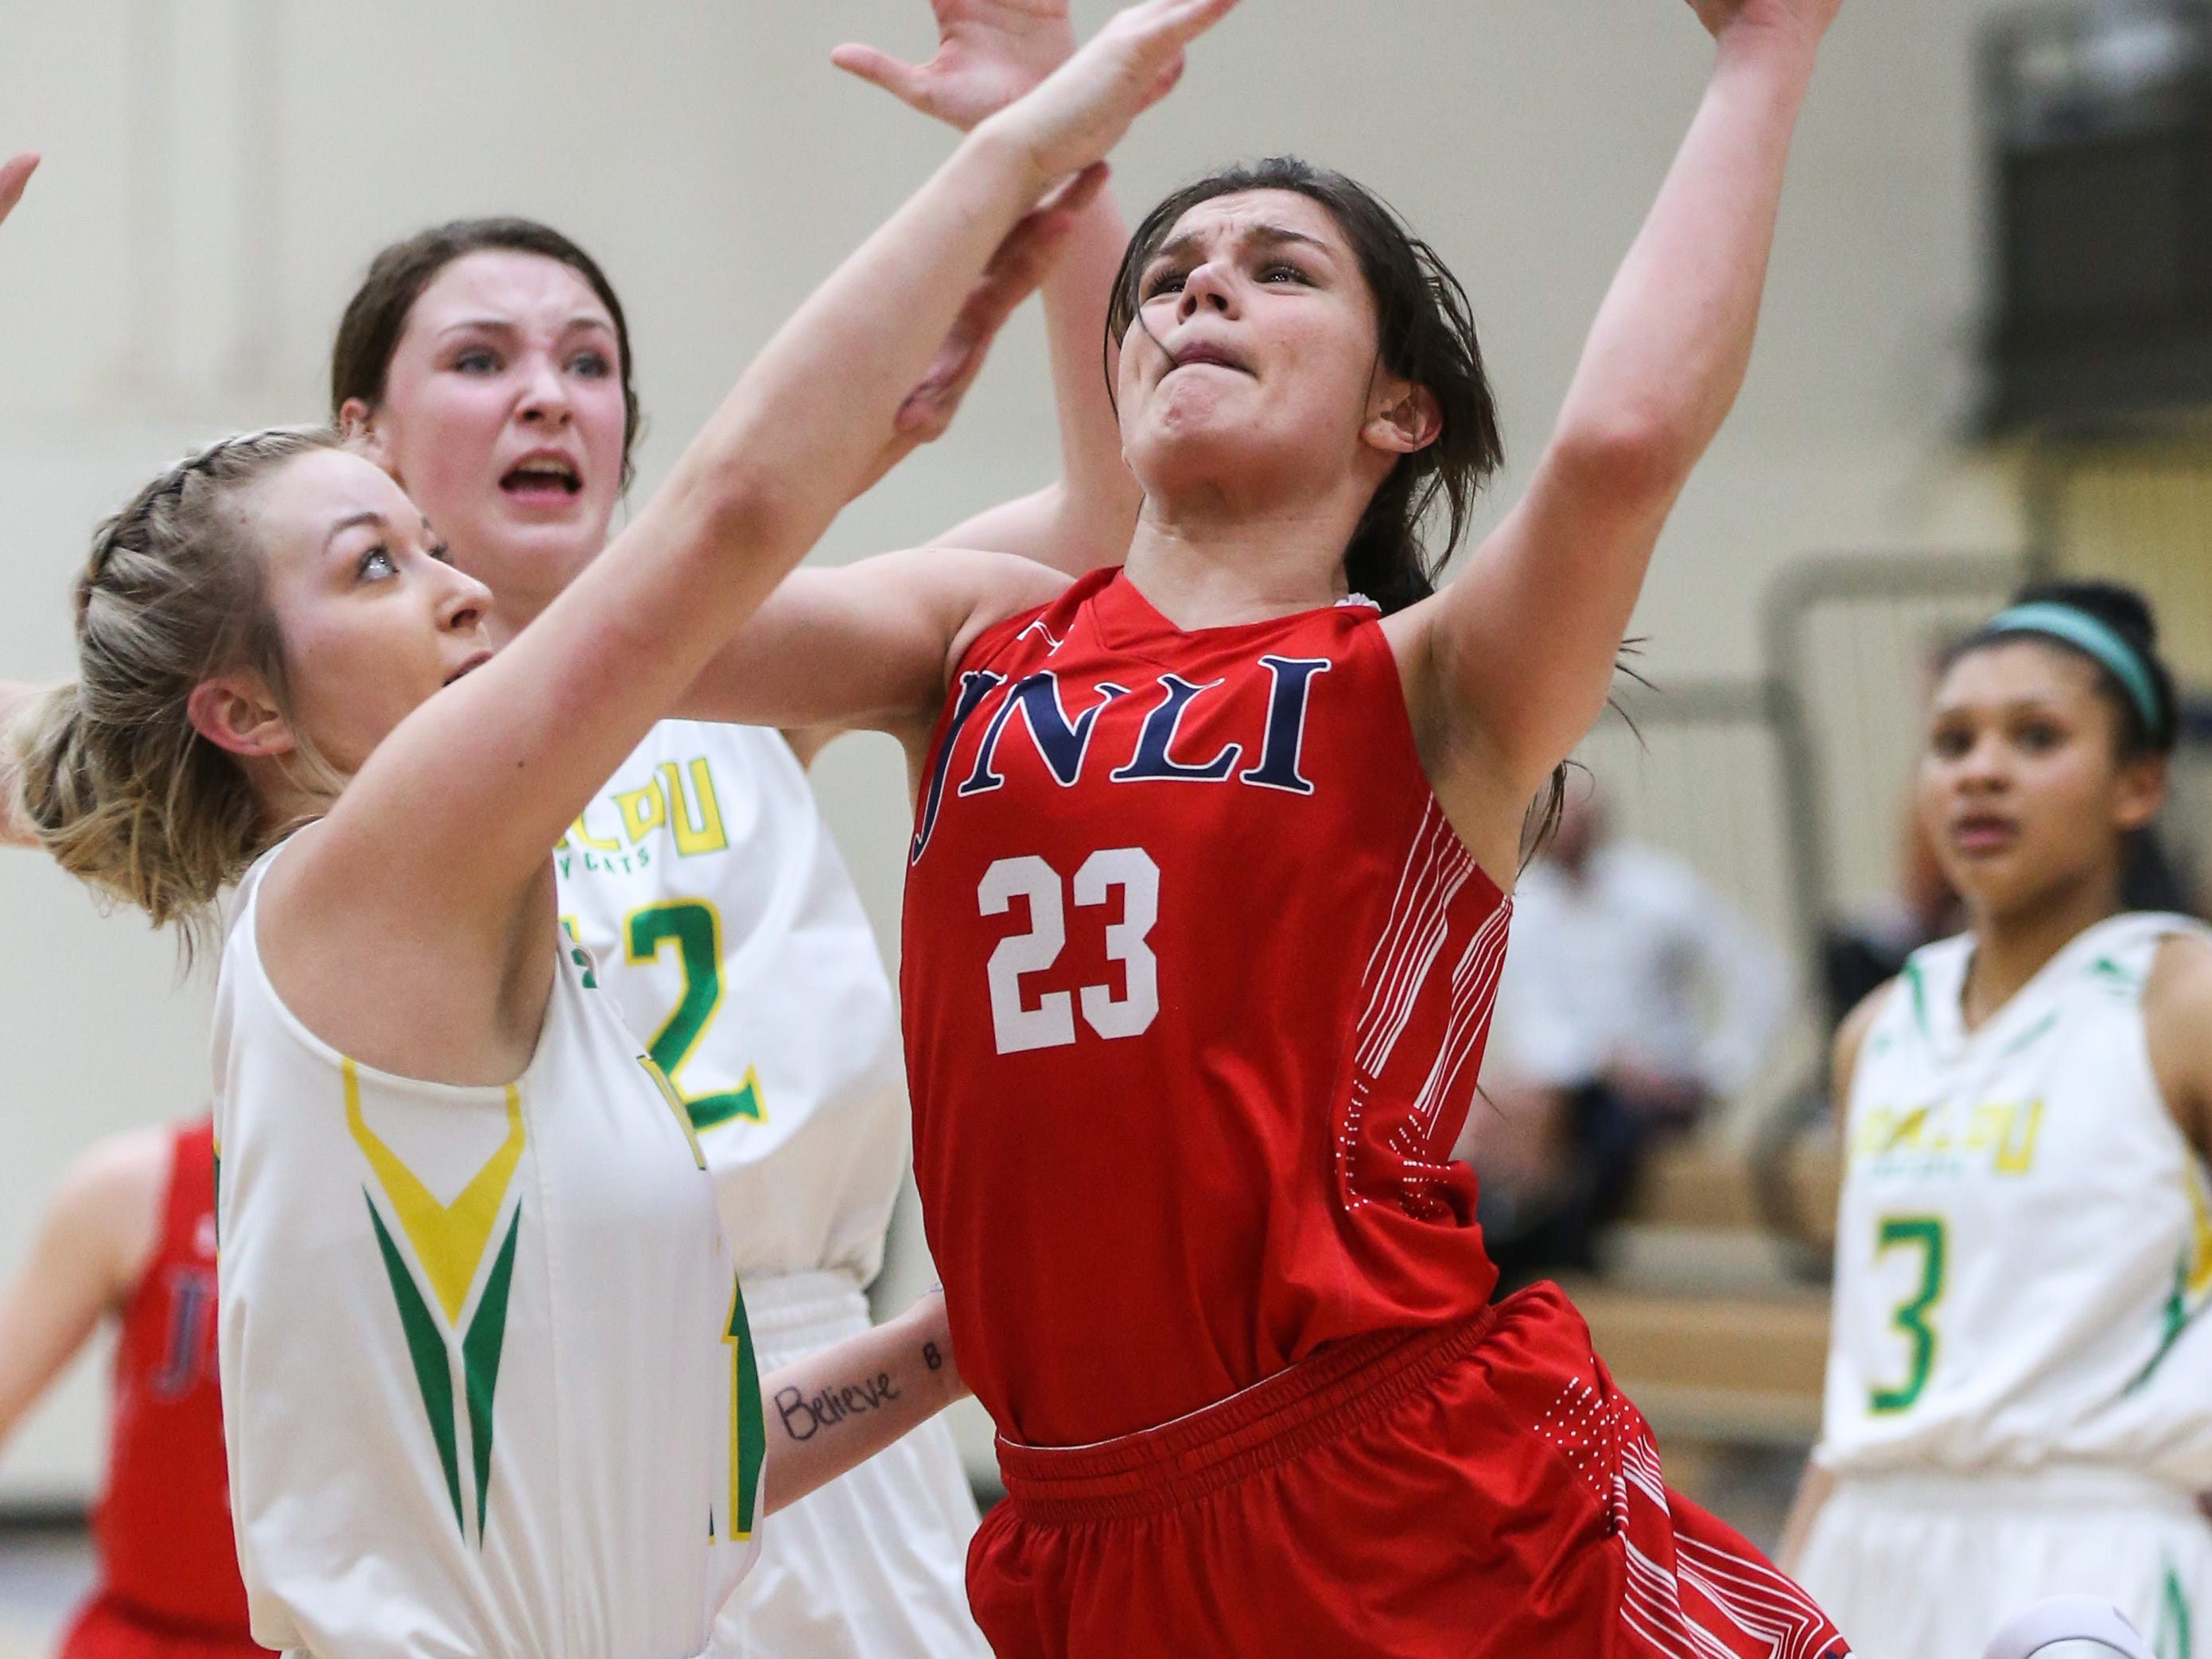 Jim Ned's Libby Tutt goes for a layup as Idalou players block during the I-3A regional tournament Friday, Feb. 22, 2019, at Wayland Baptist University in Plainview.